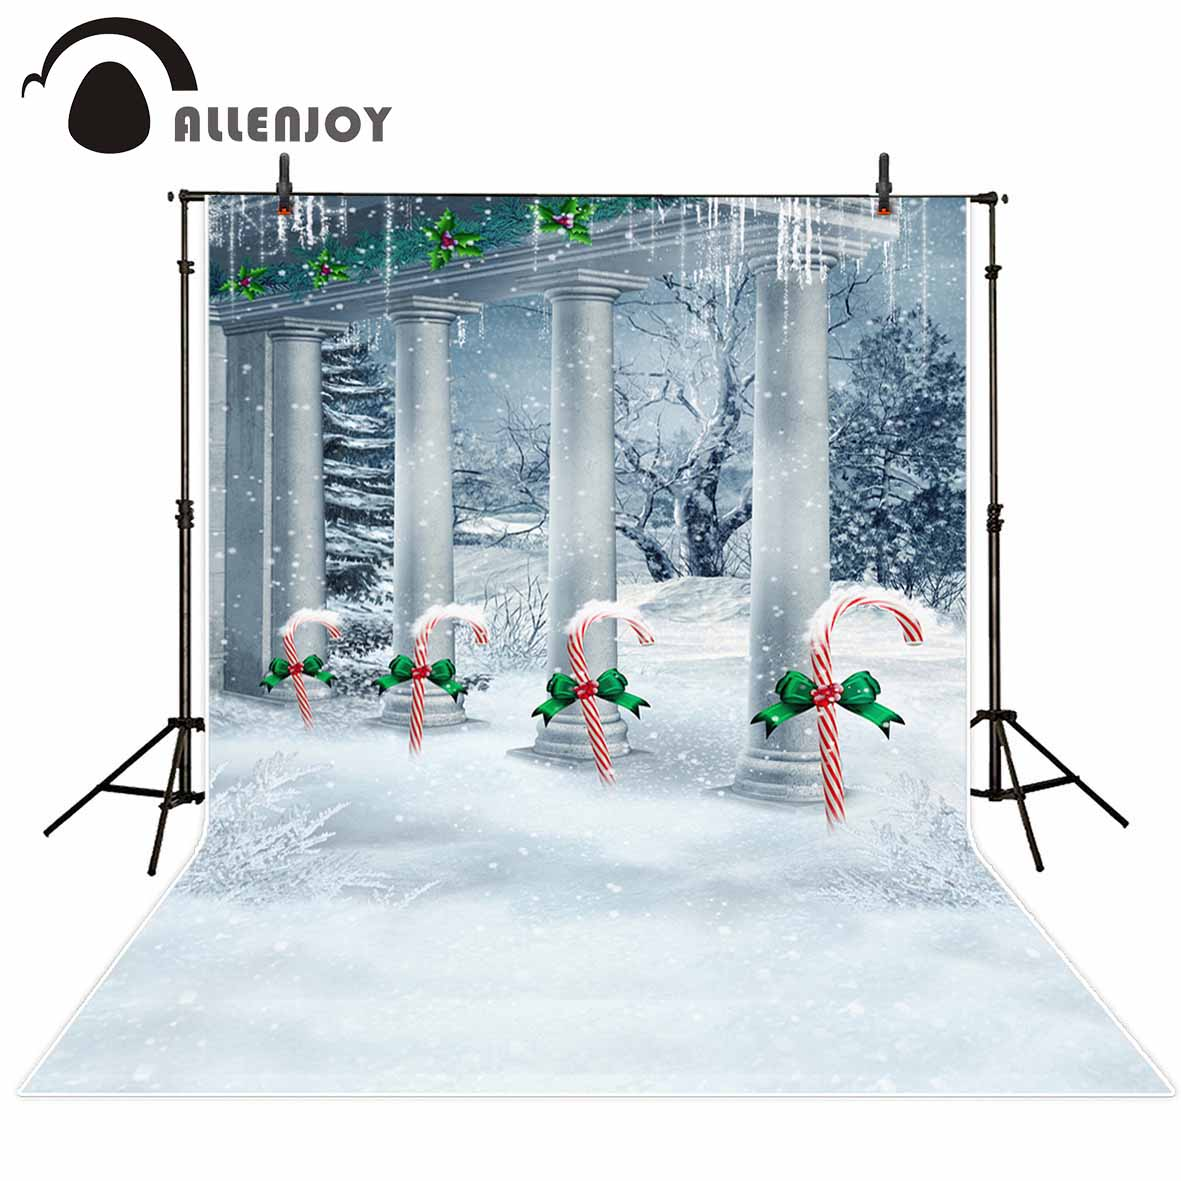 Allenjoy photography backdrops Christmas background winter snow cane sugar vinyl backdrops for photography baby